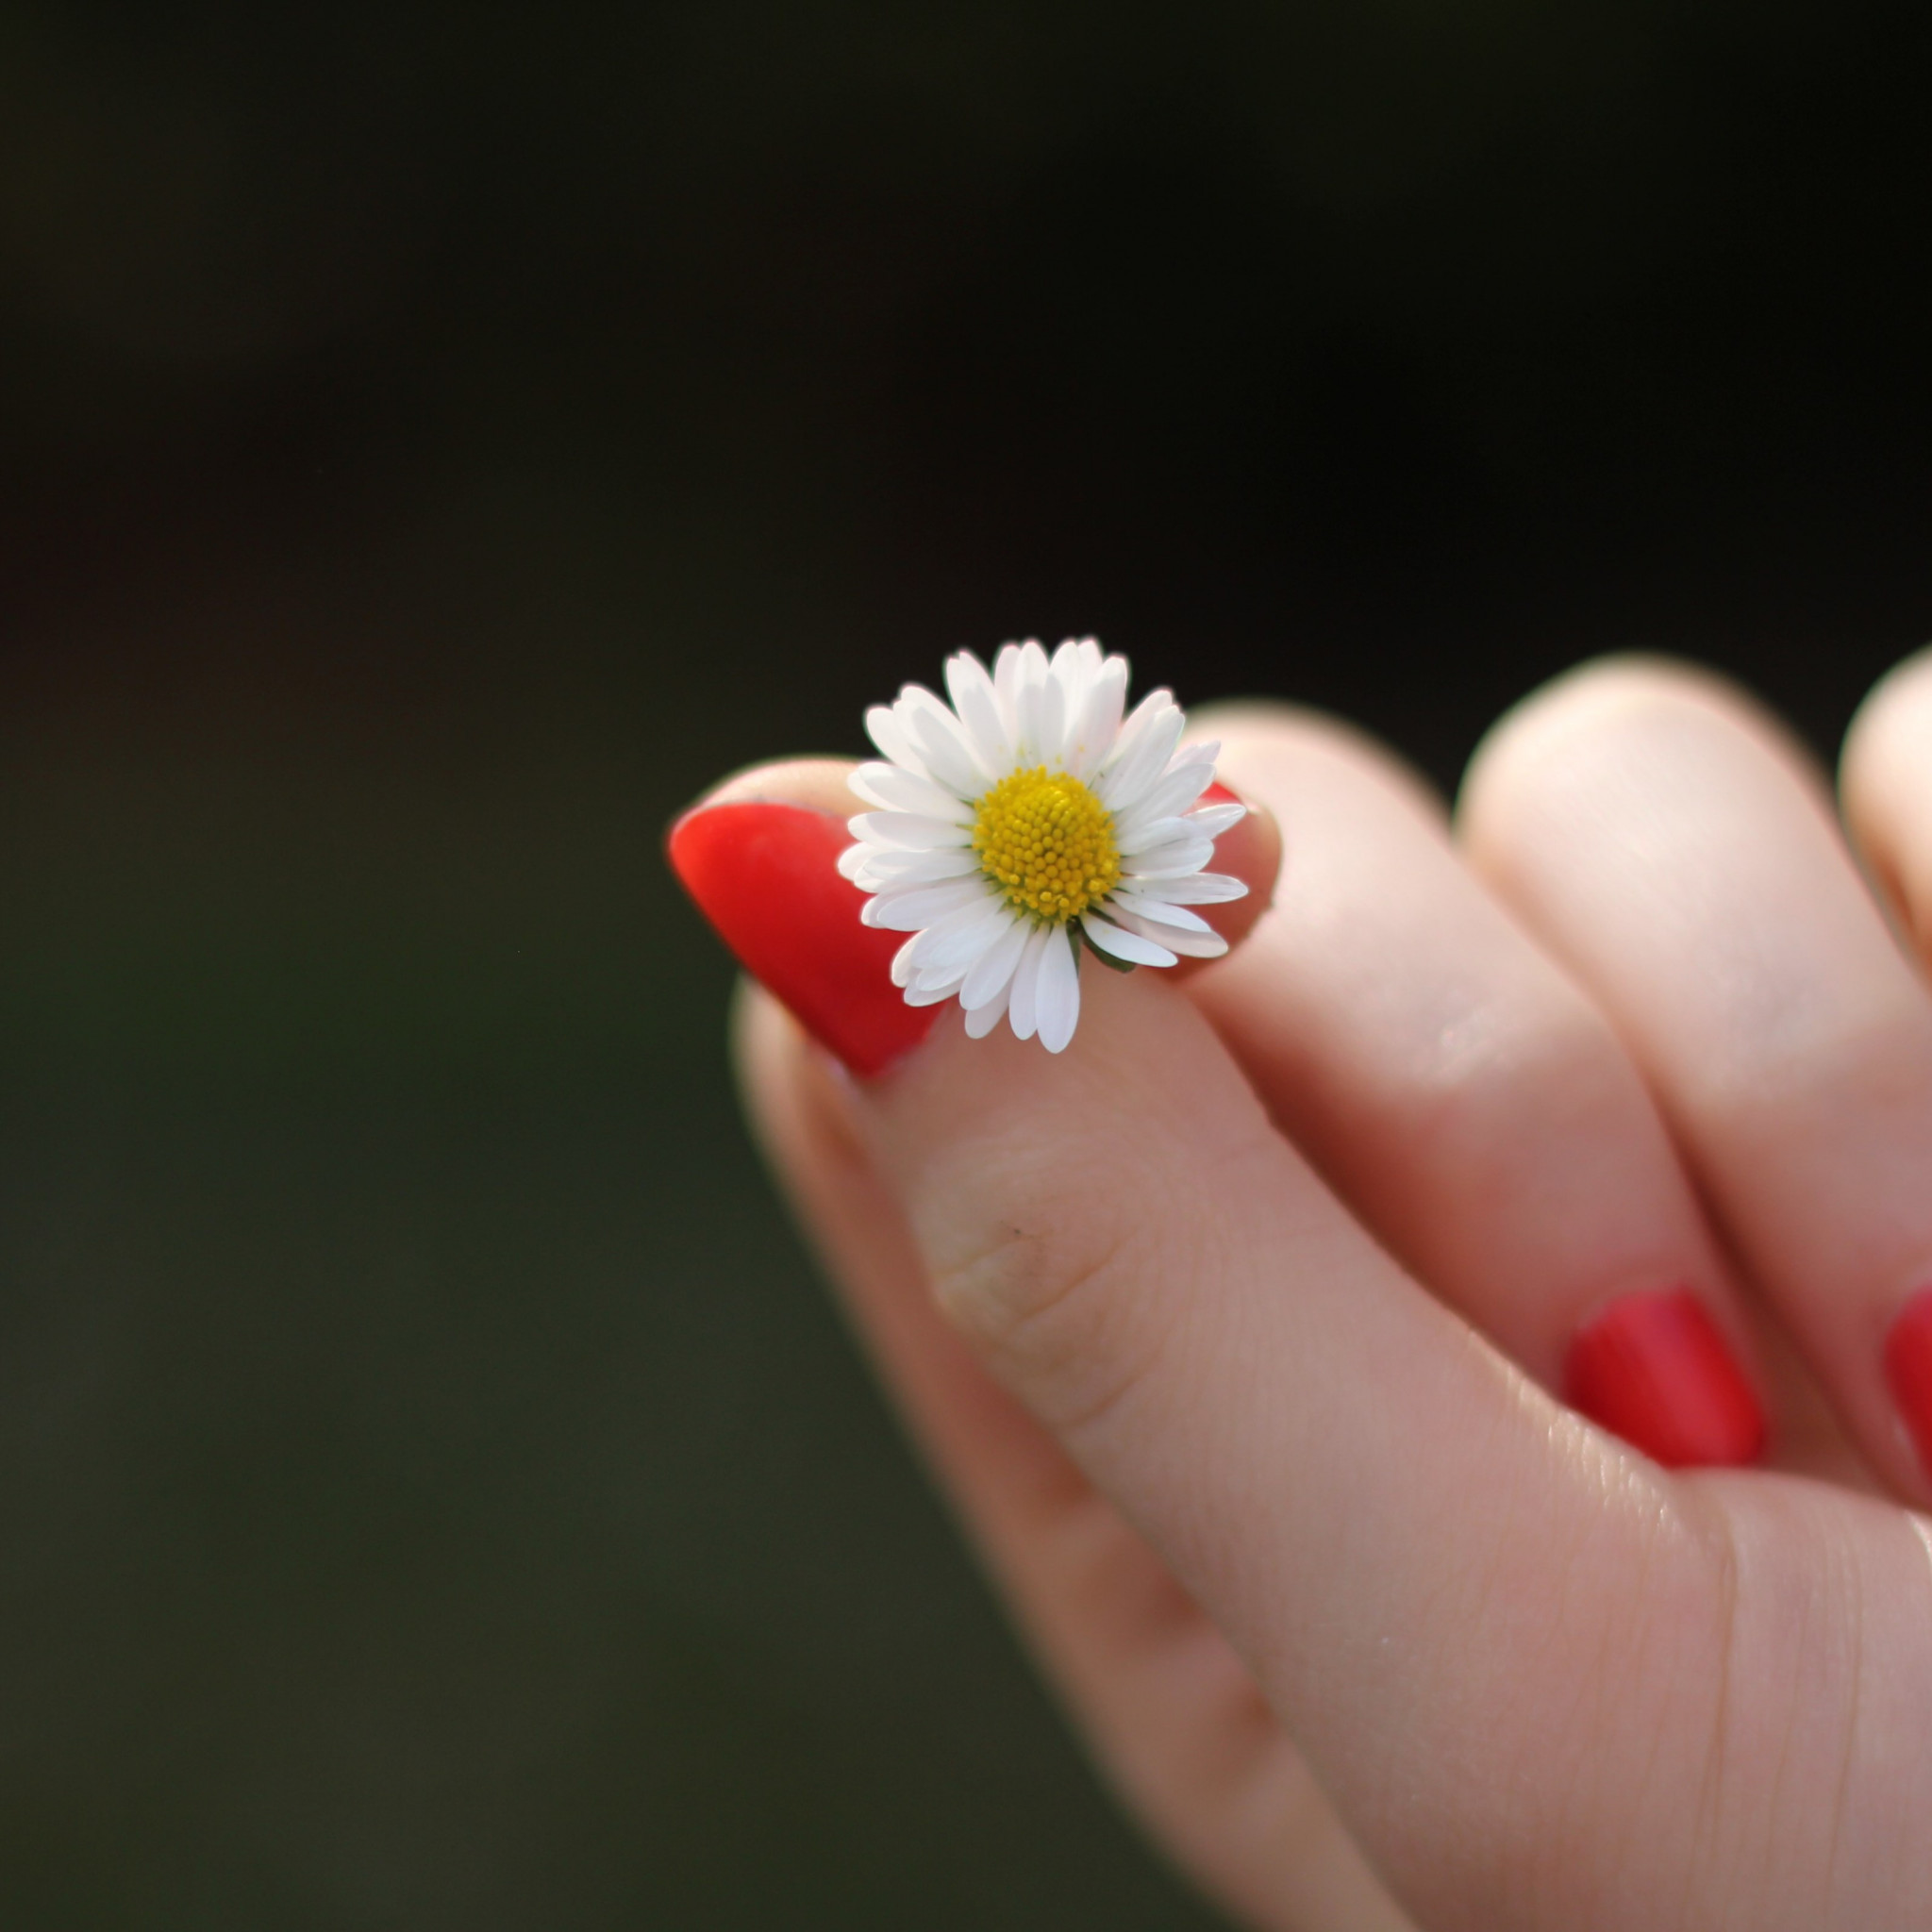 Girl with red nails and a daisy flower wallpaper 2048x2048